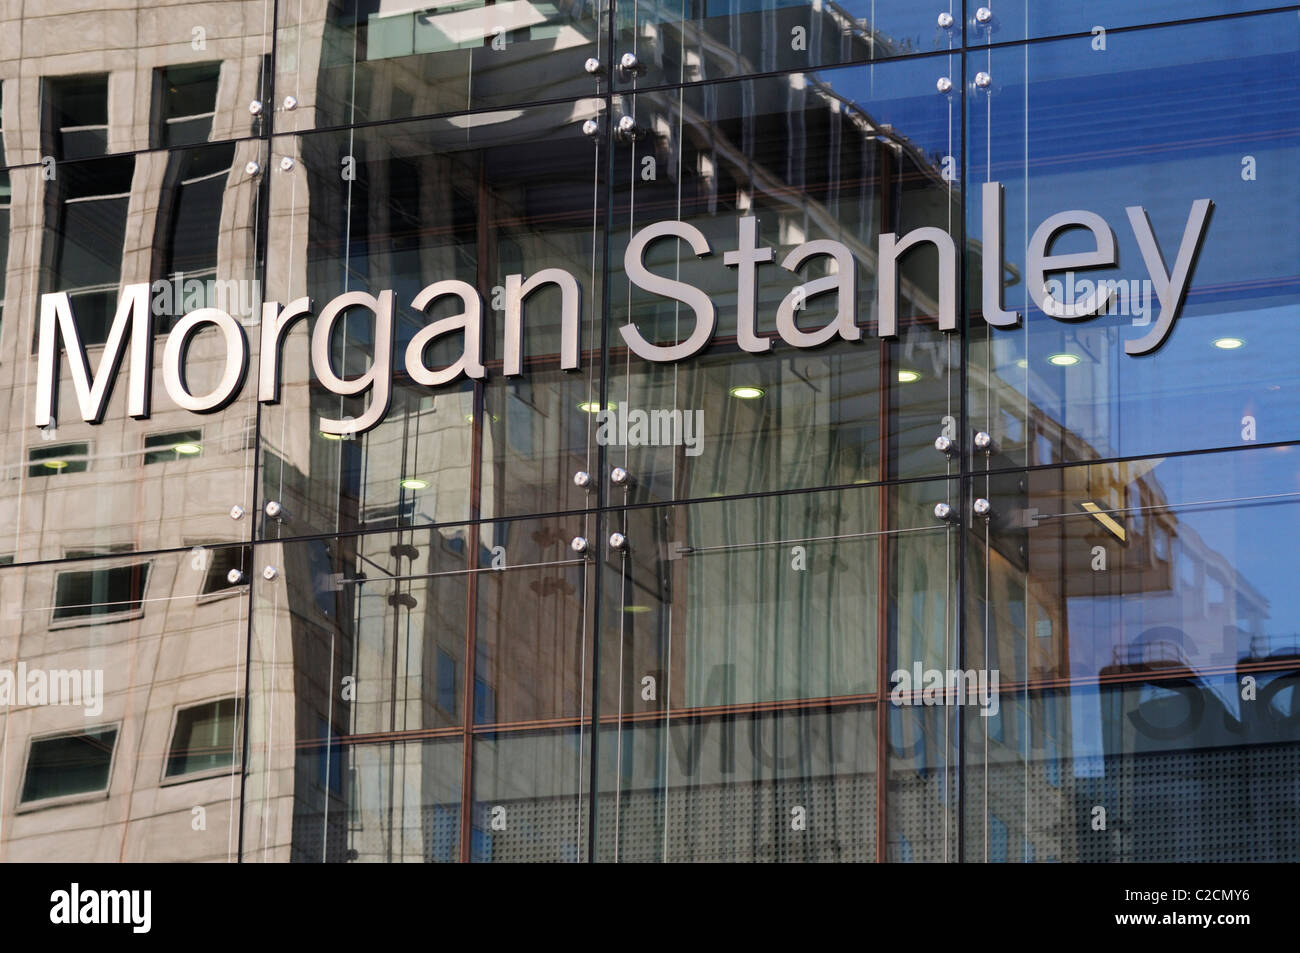 Morgan Stanley Financial Services Company Sign, Canary Wharf Stock